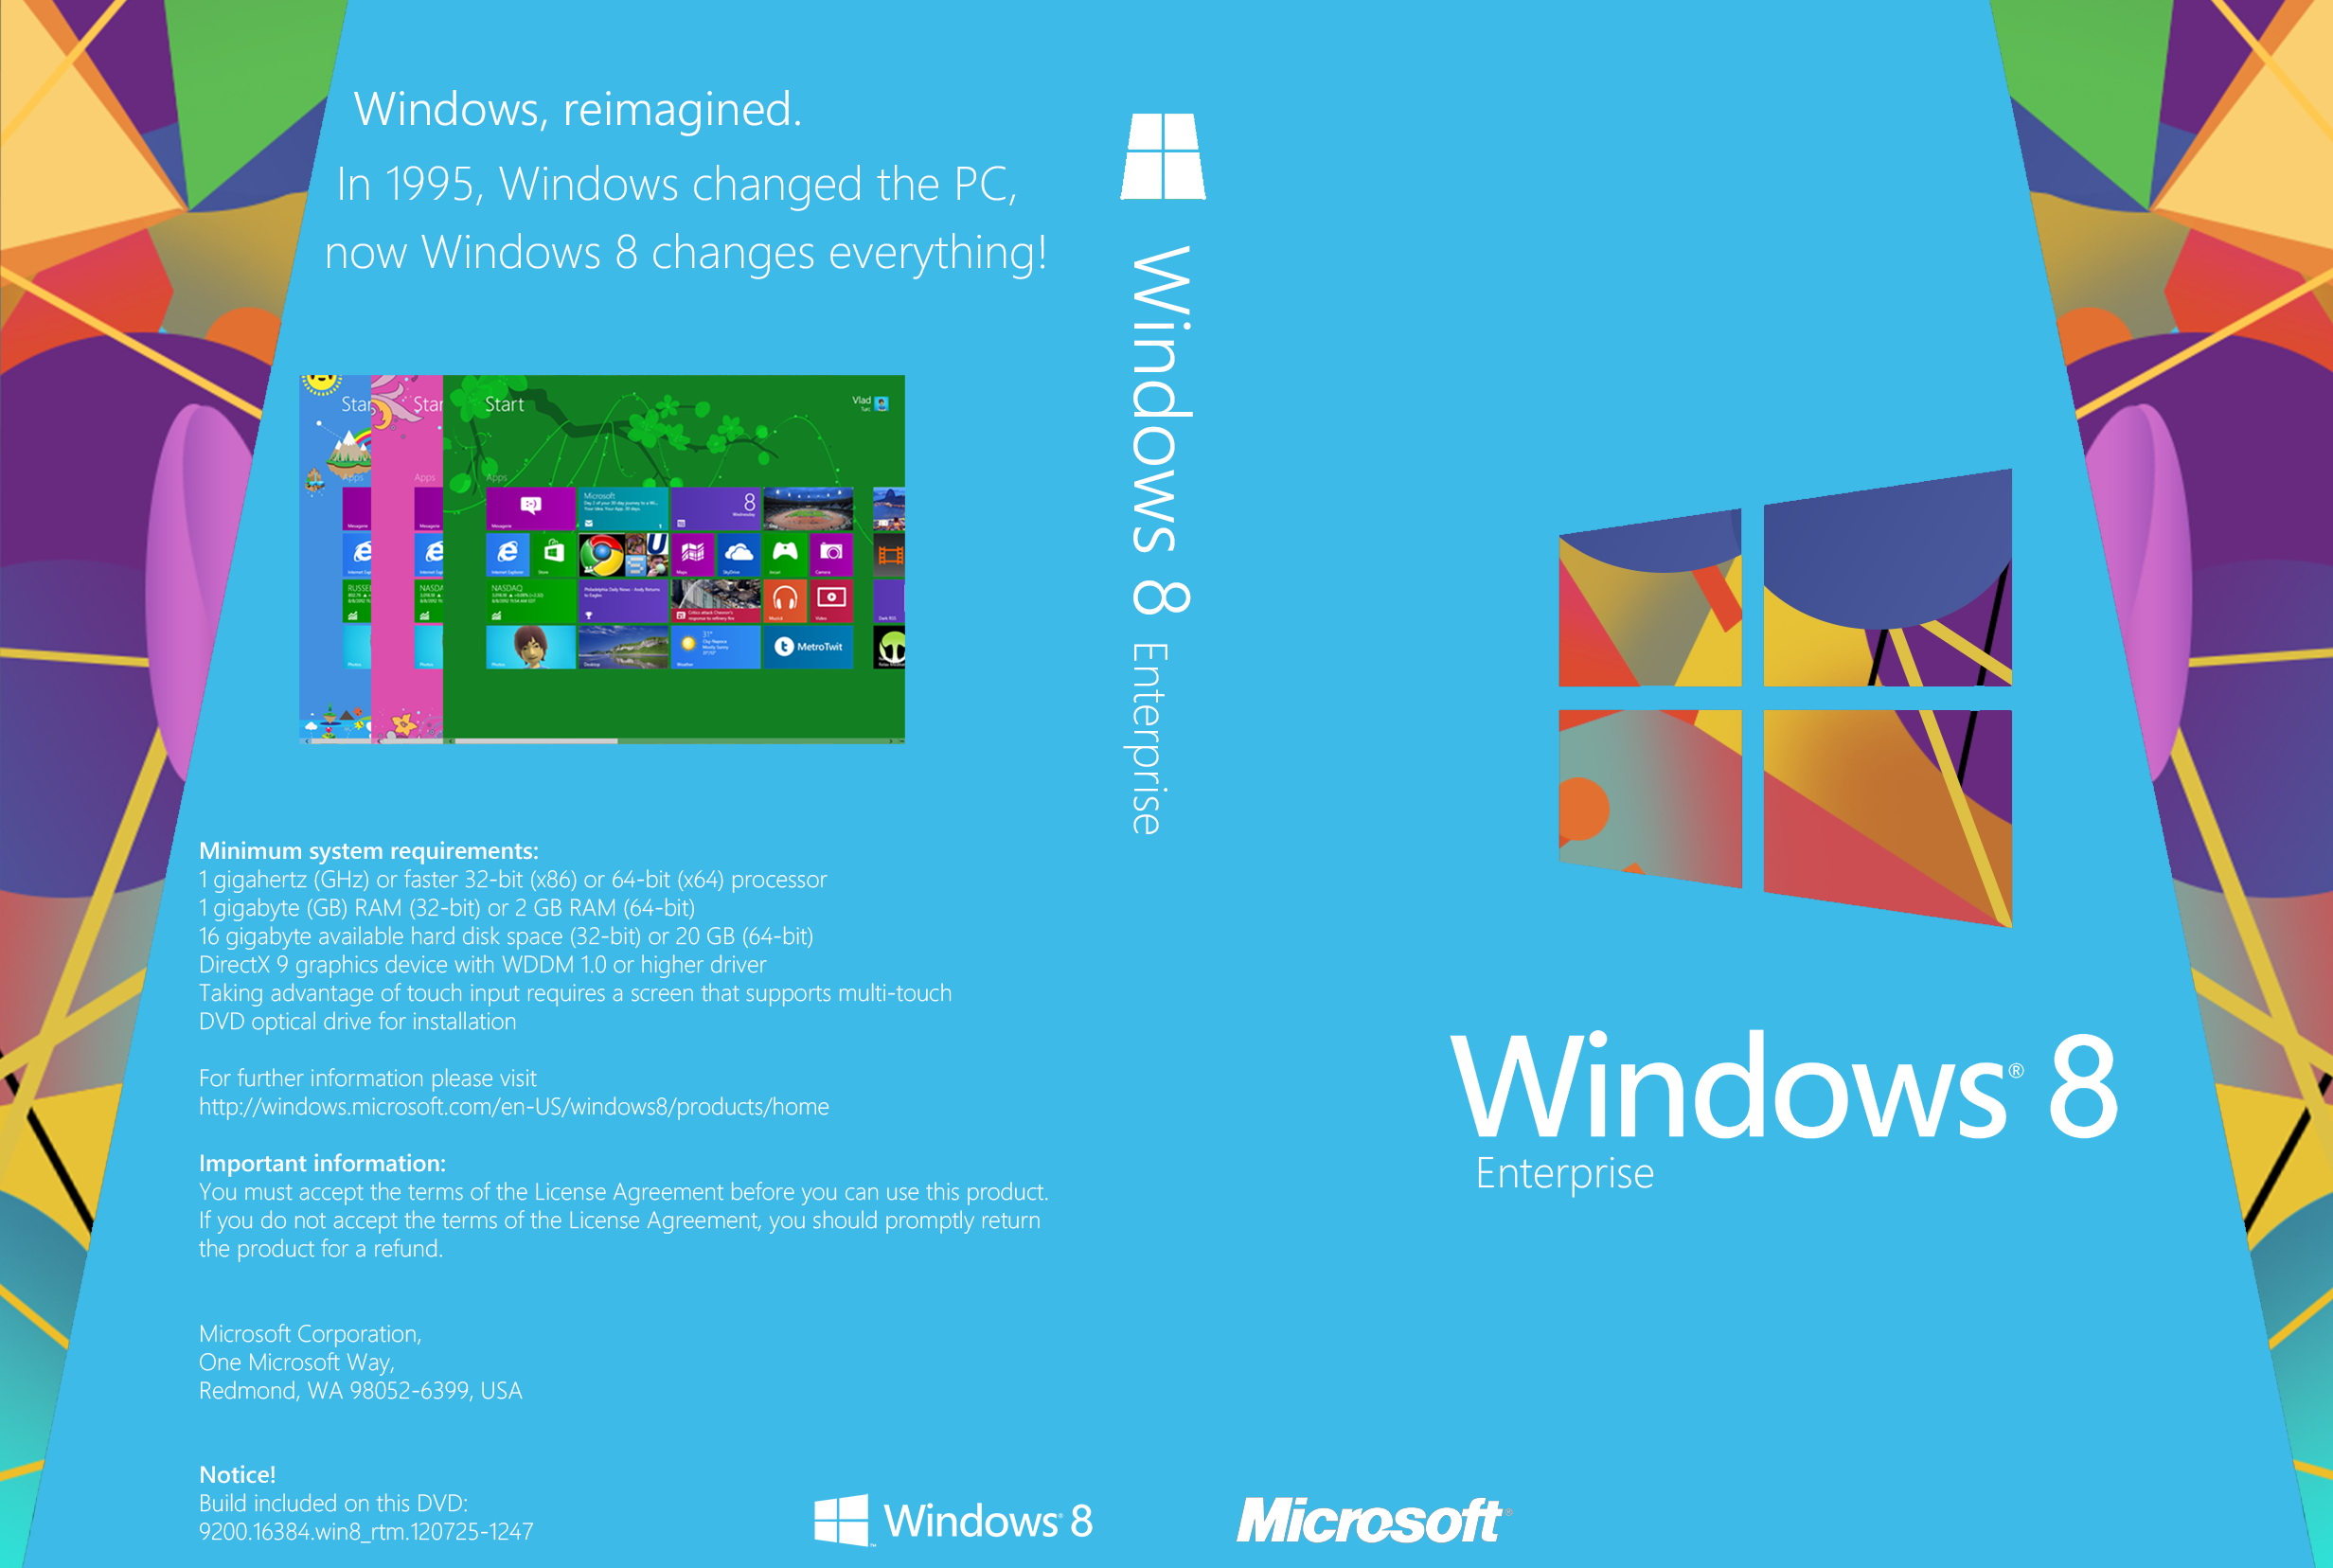 File:Windows8Enterprise jpg - EIK wiki